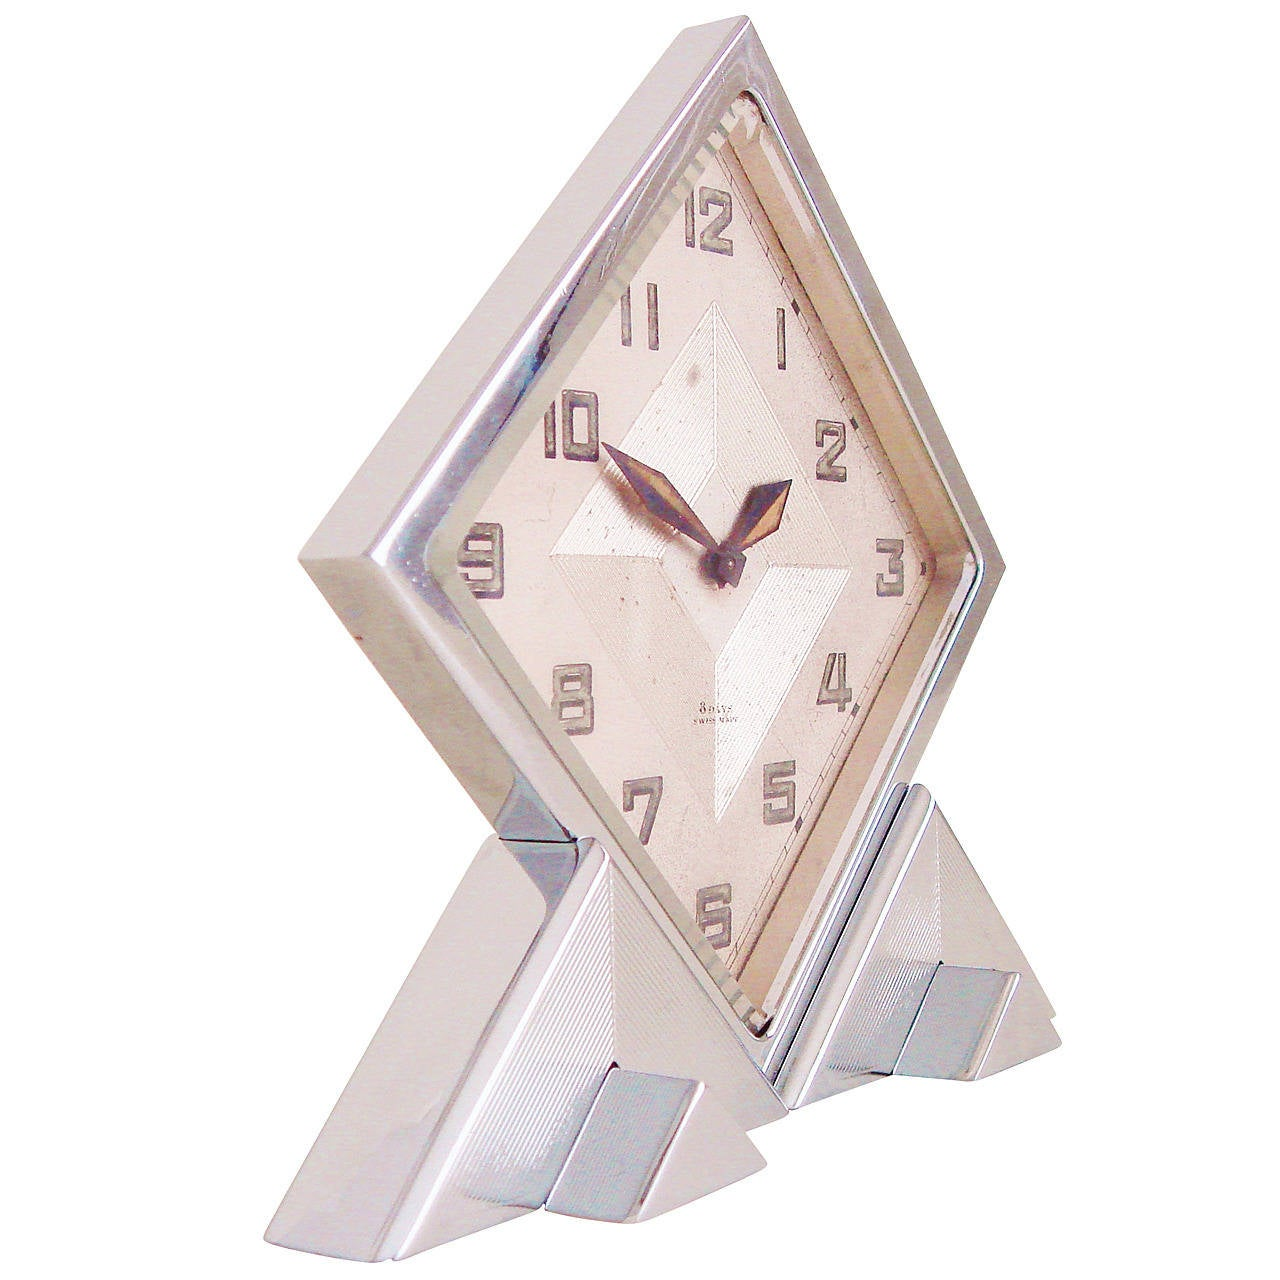 Rare Swiss Export Extreme Geometric Chrome 8-Day Mechanical Shelf Clock